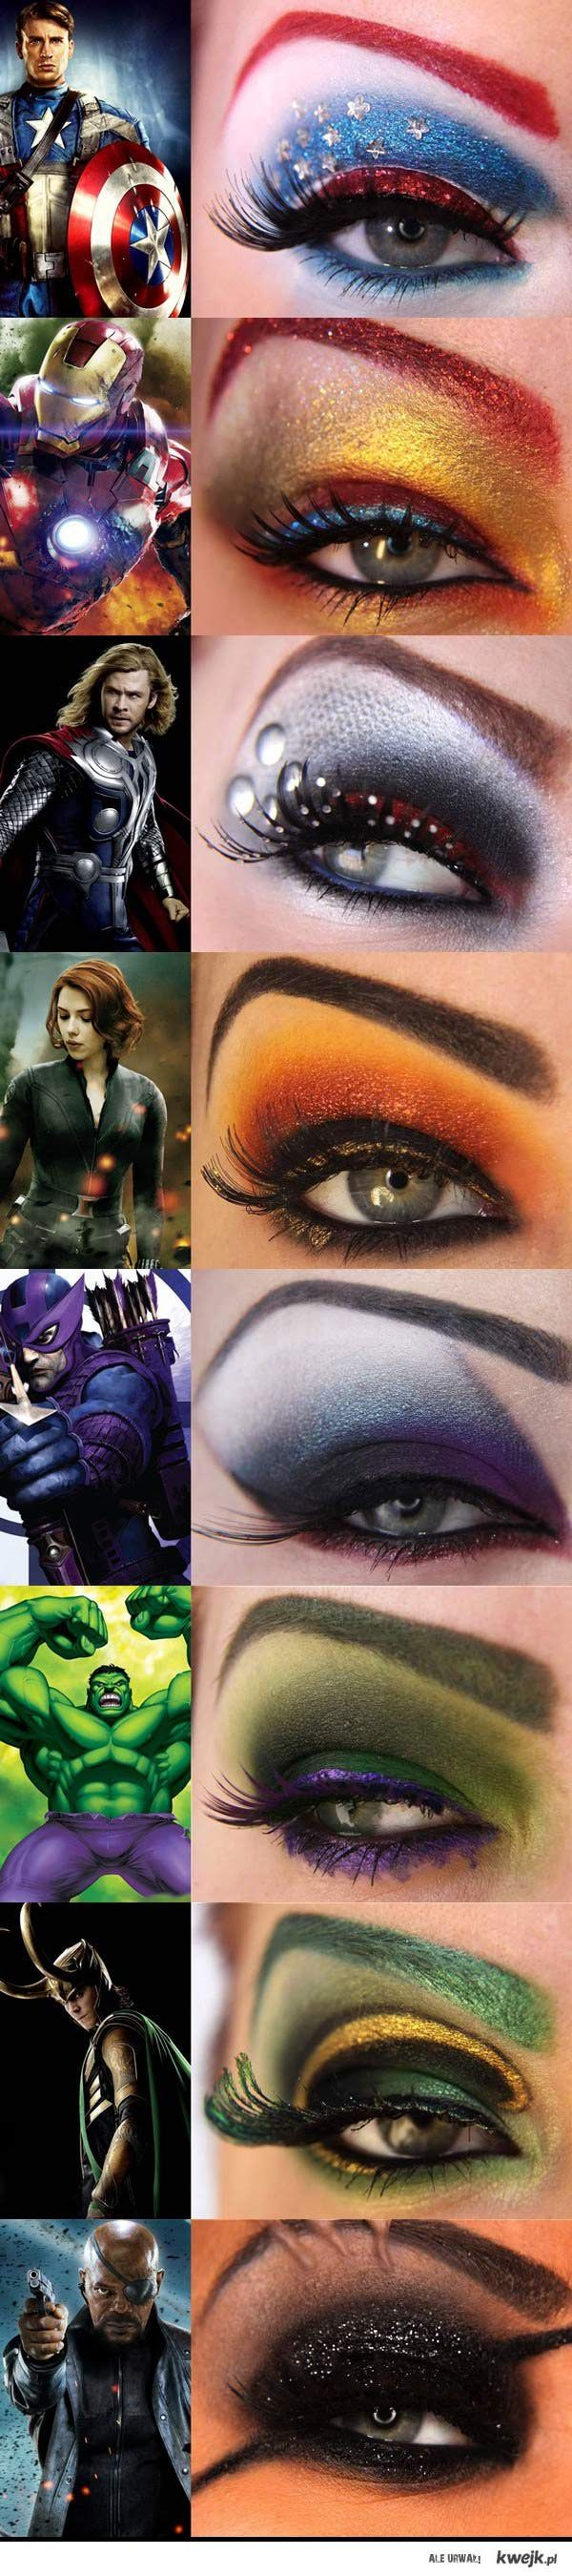 the avengers makeup - I wish I could make it!